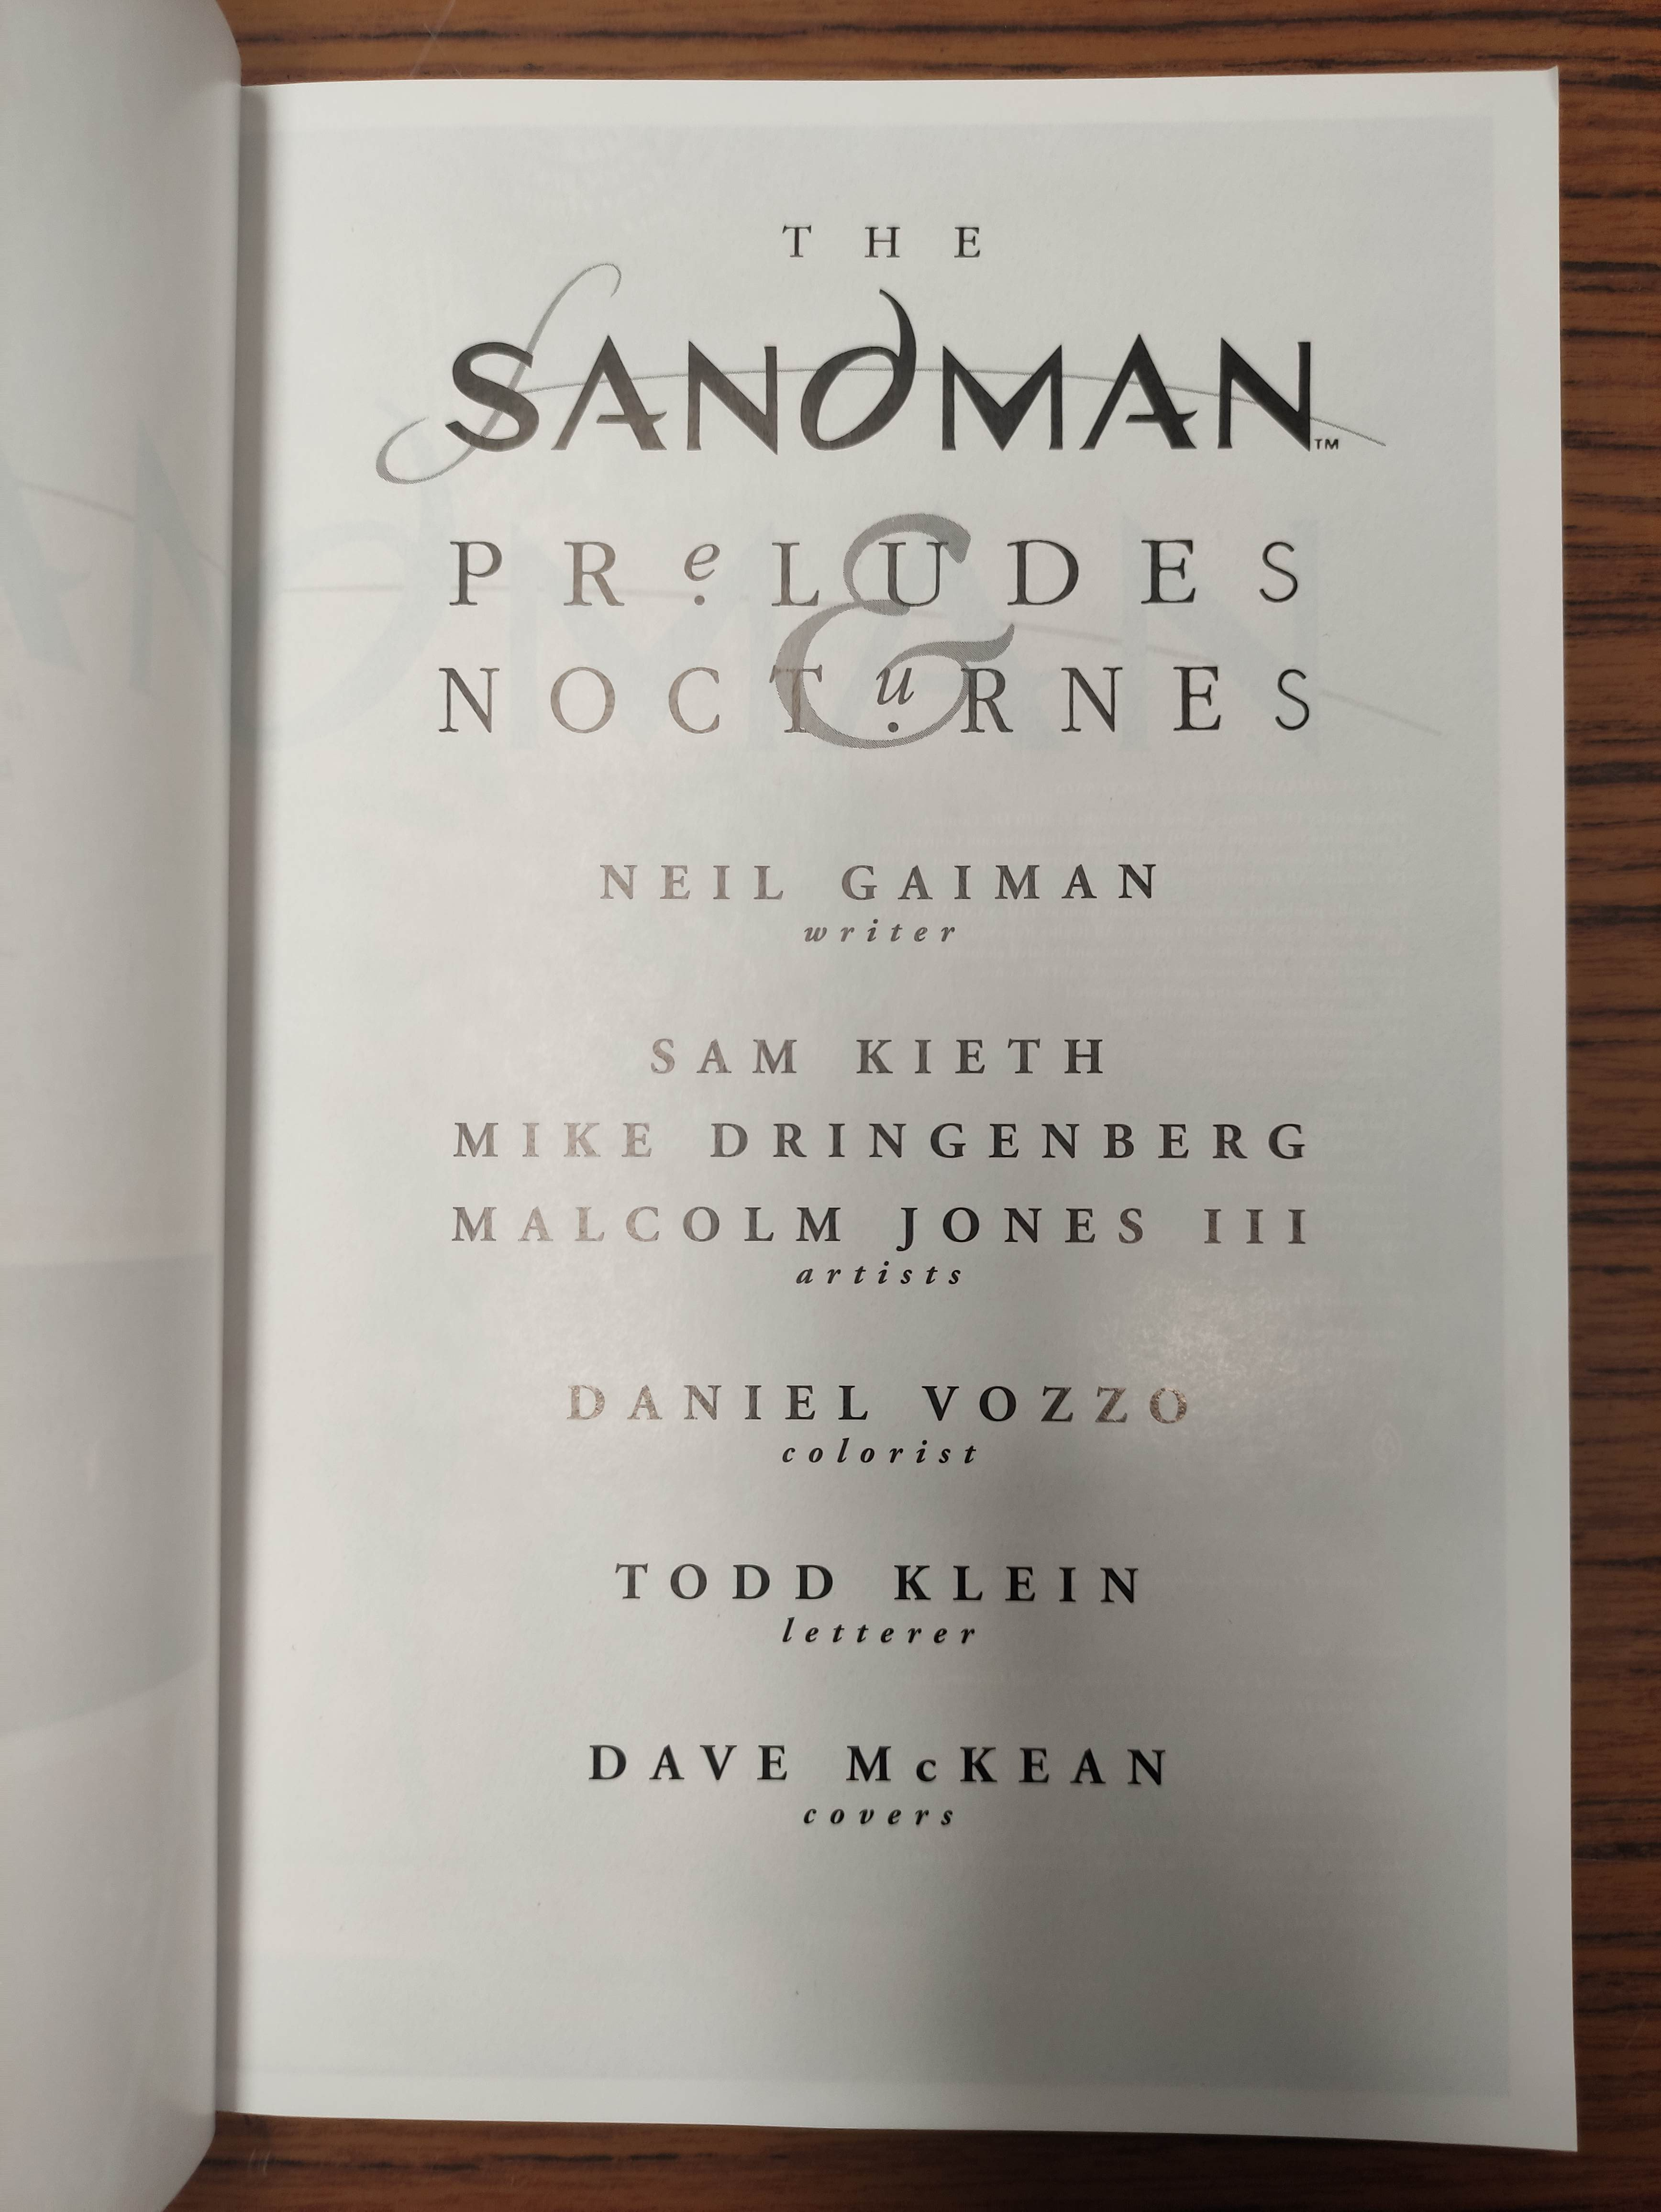 GAIMAN NEIL.The Sandman. Vols. 1 to 10 in wrappers & slip case; also 5 others, Neil Gaiman. - Image 7 of 17